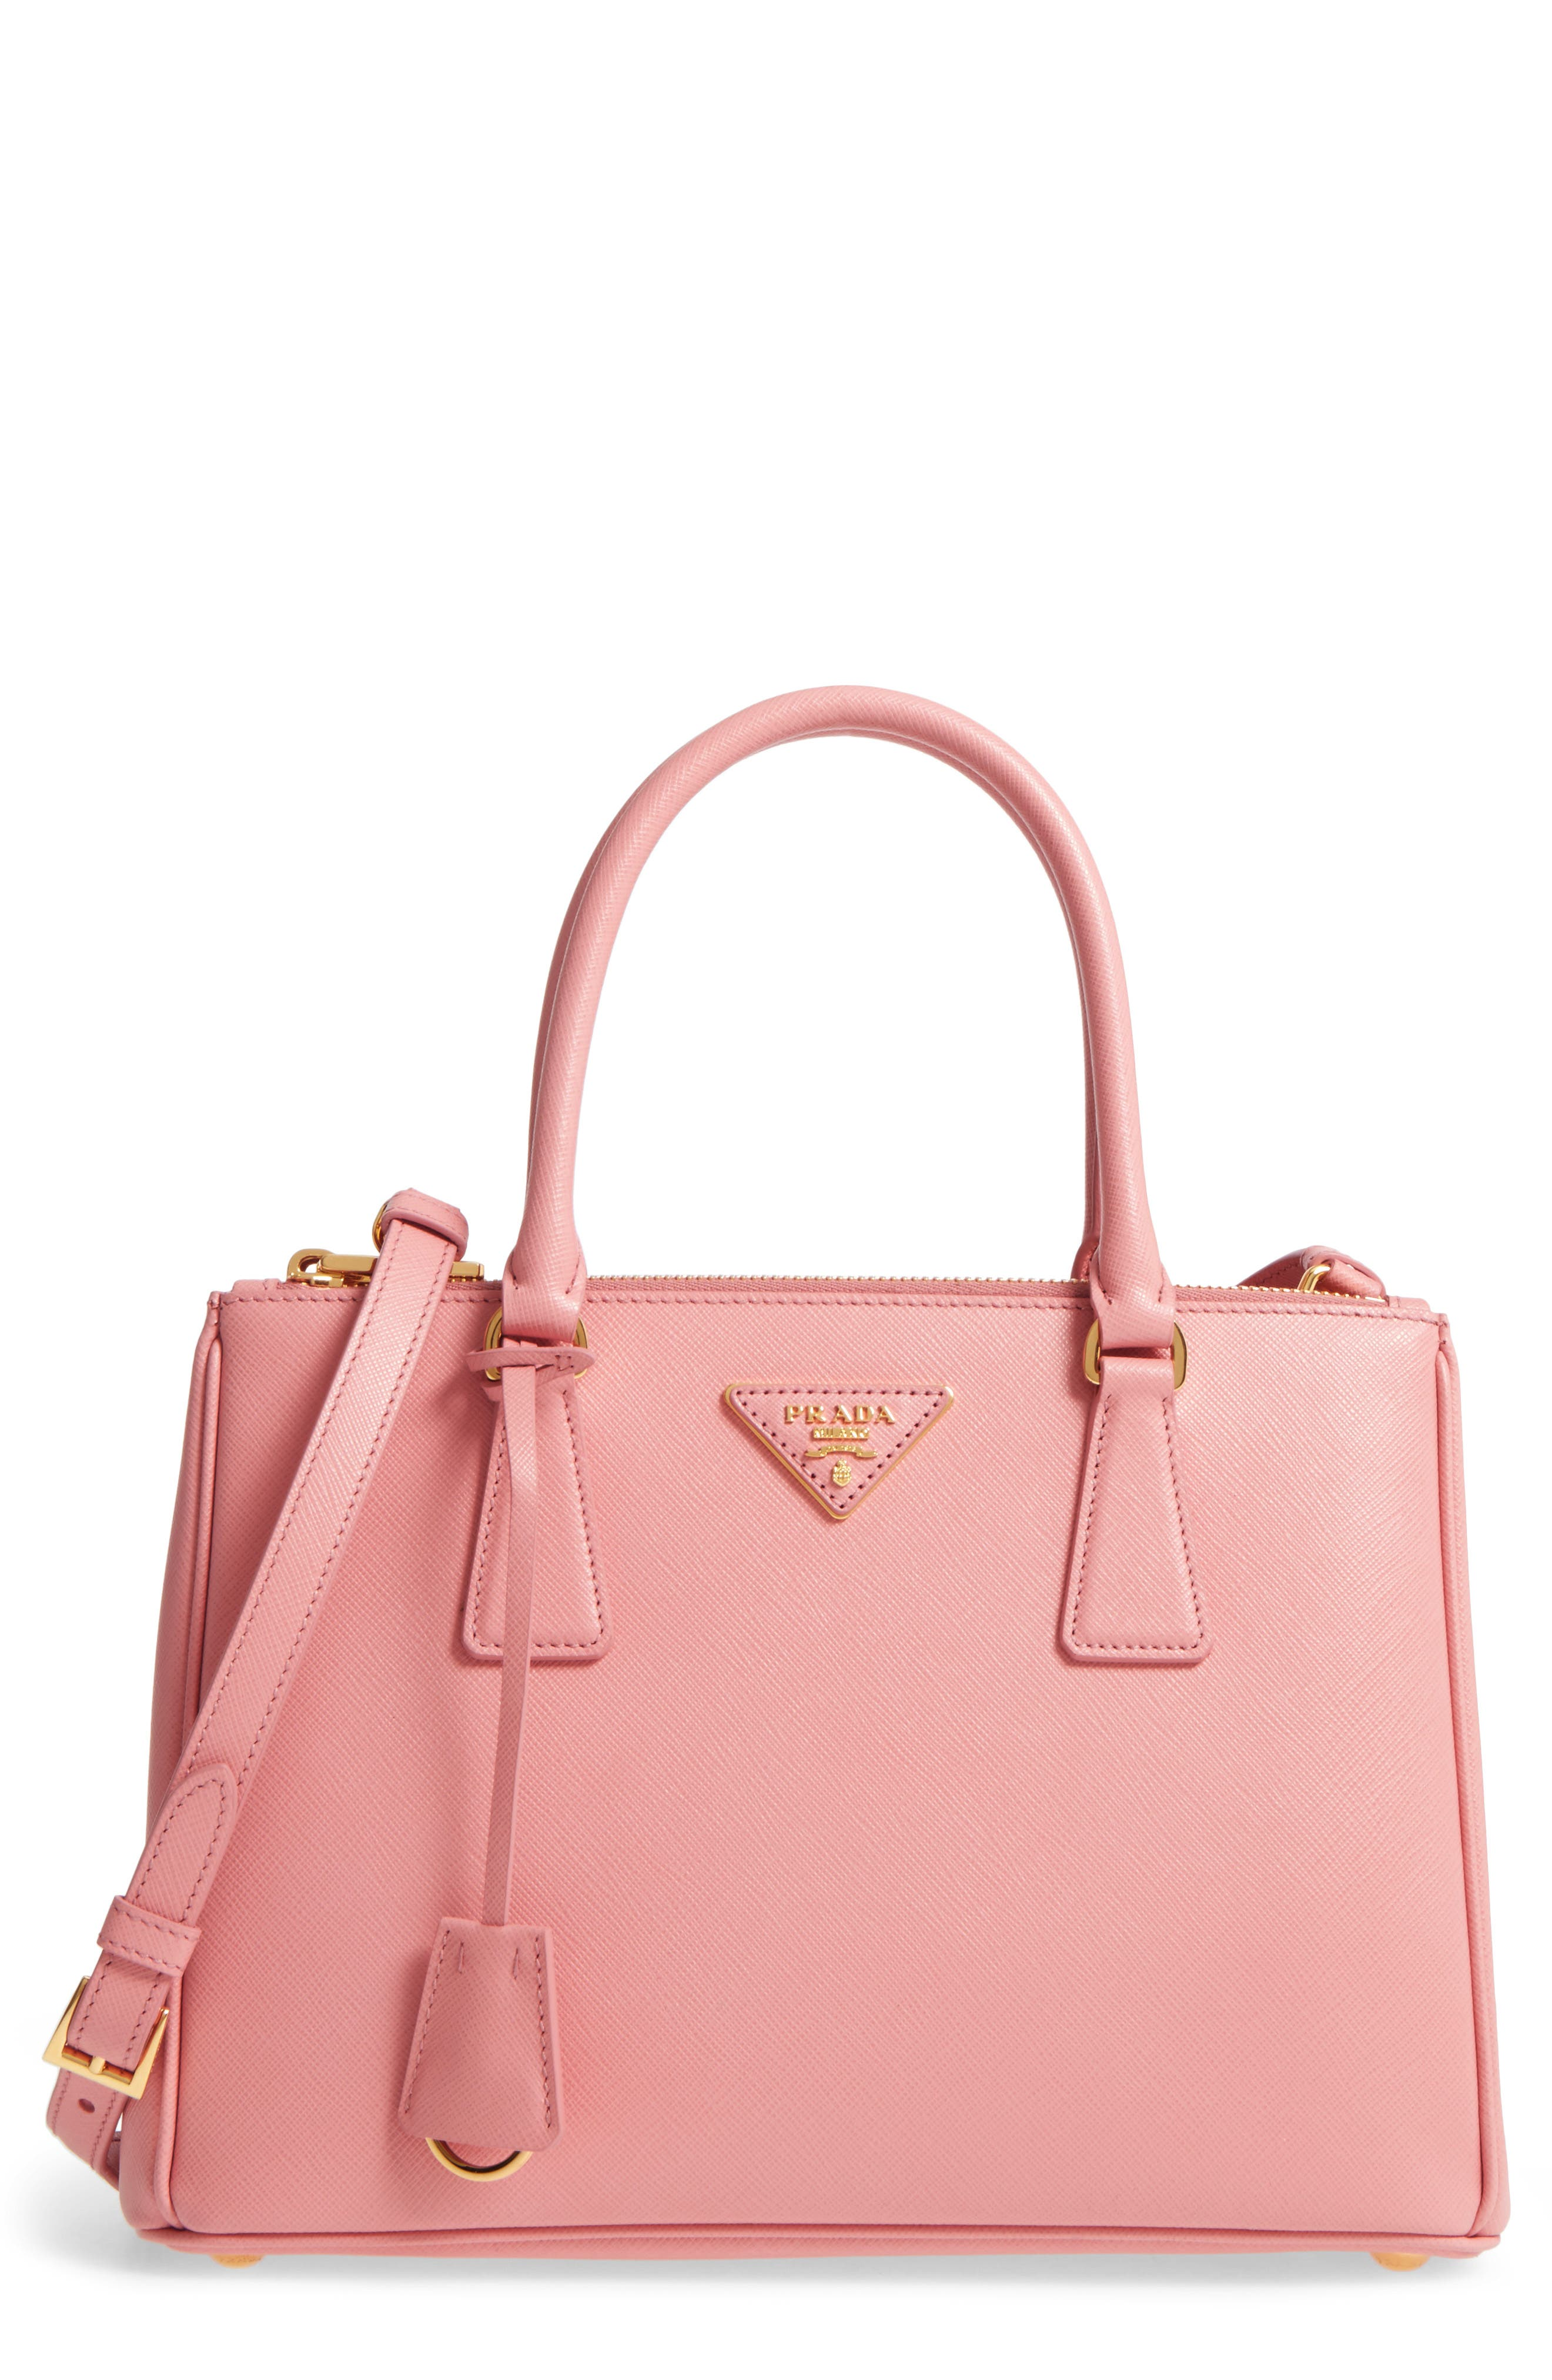 Prada Saffiano Lux Leather Satchel